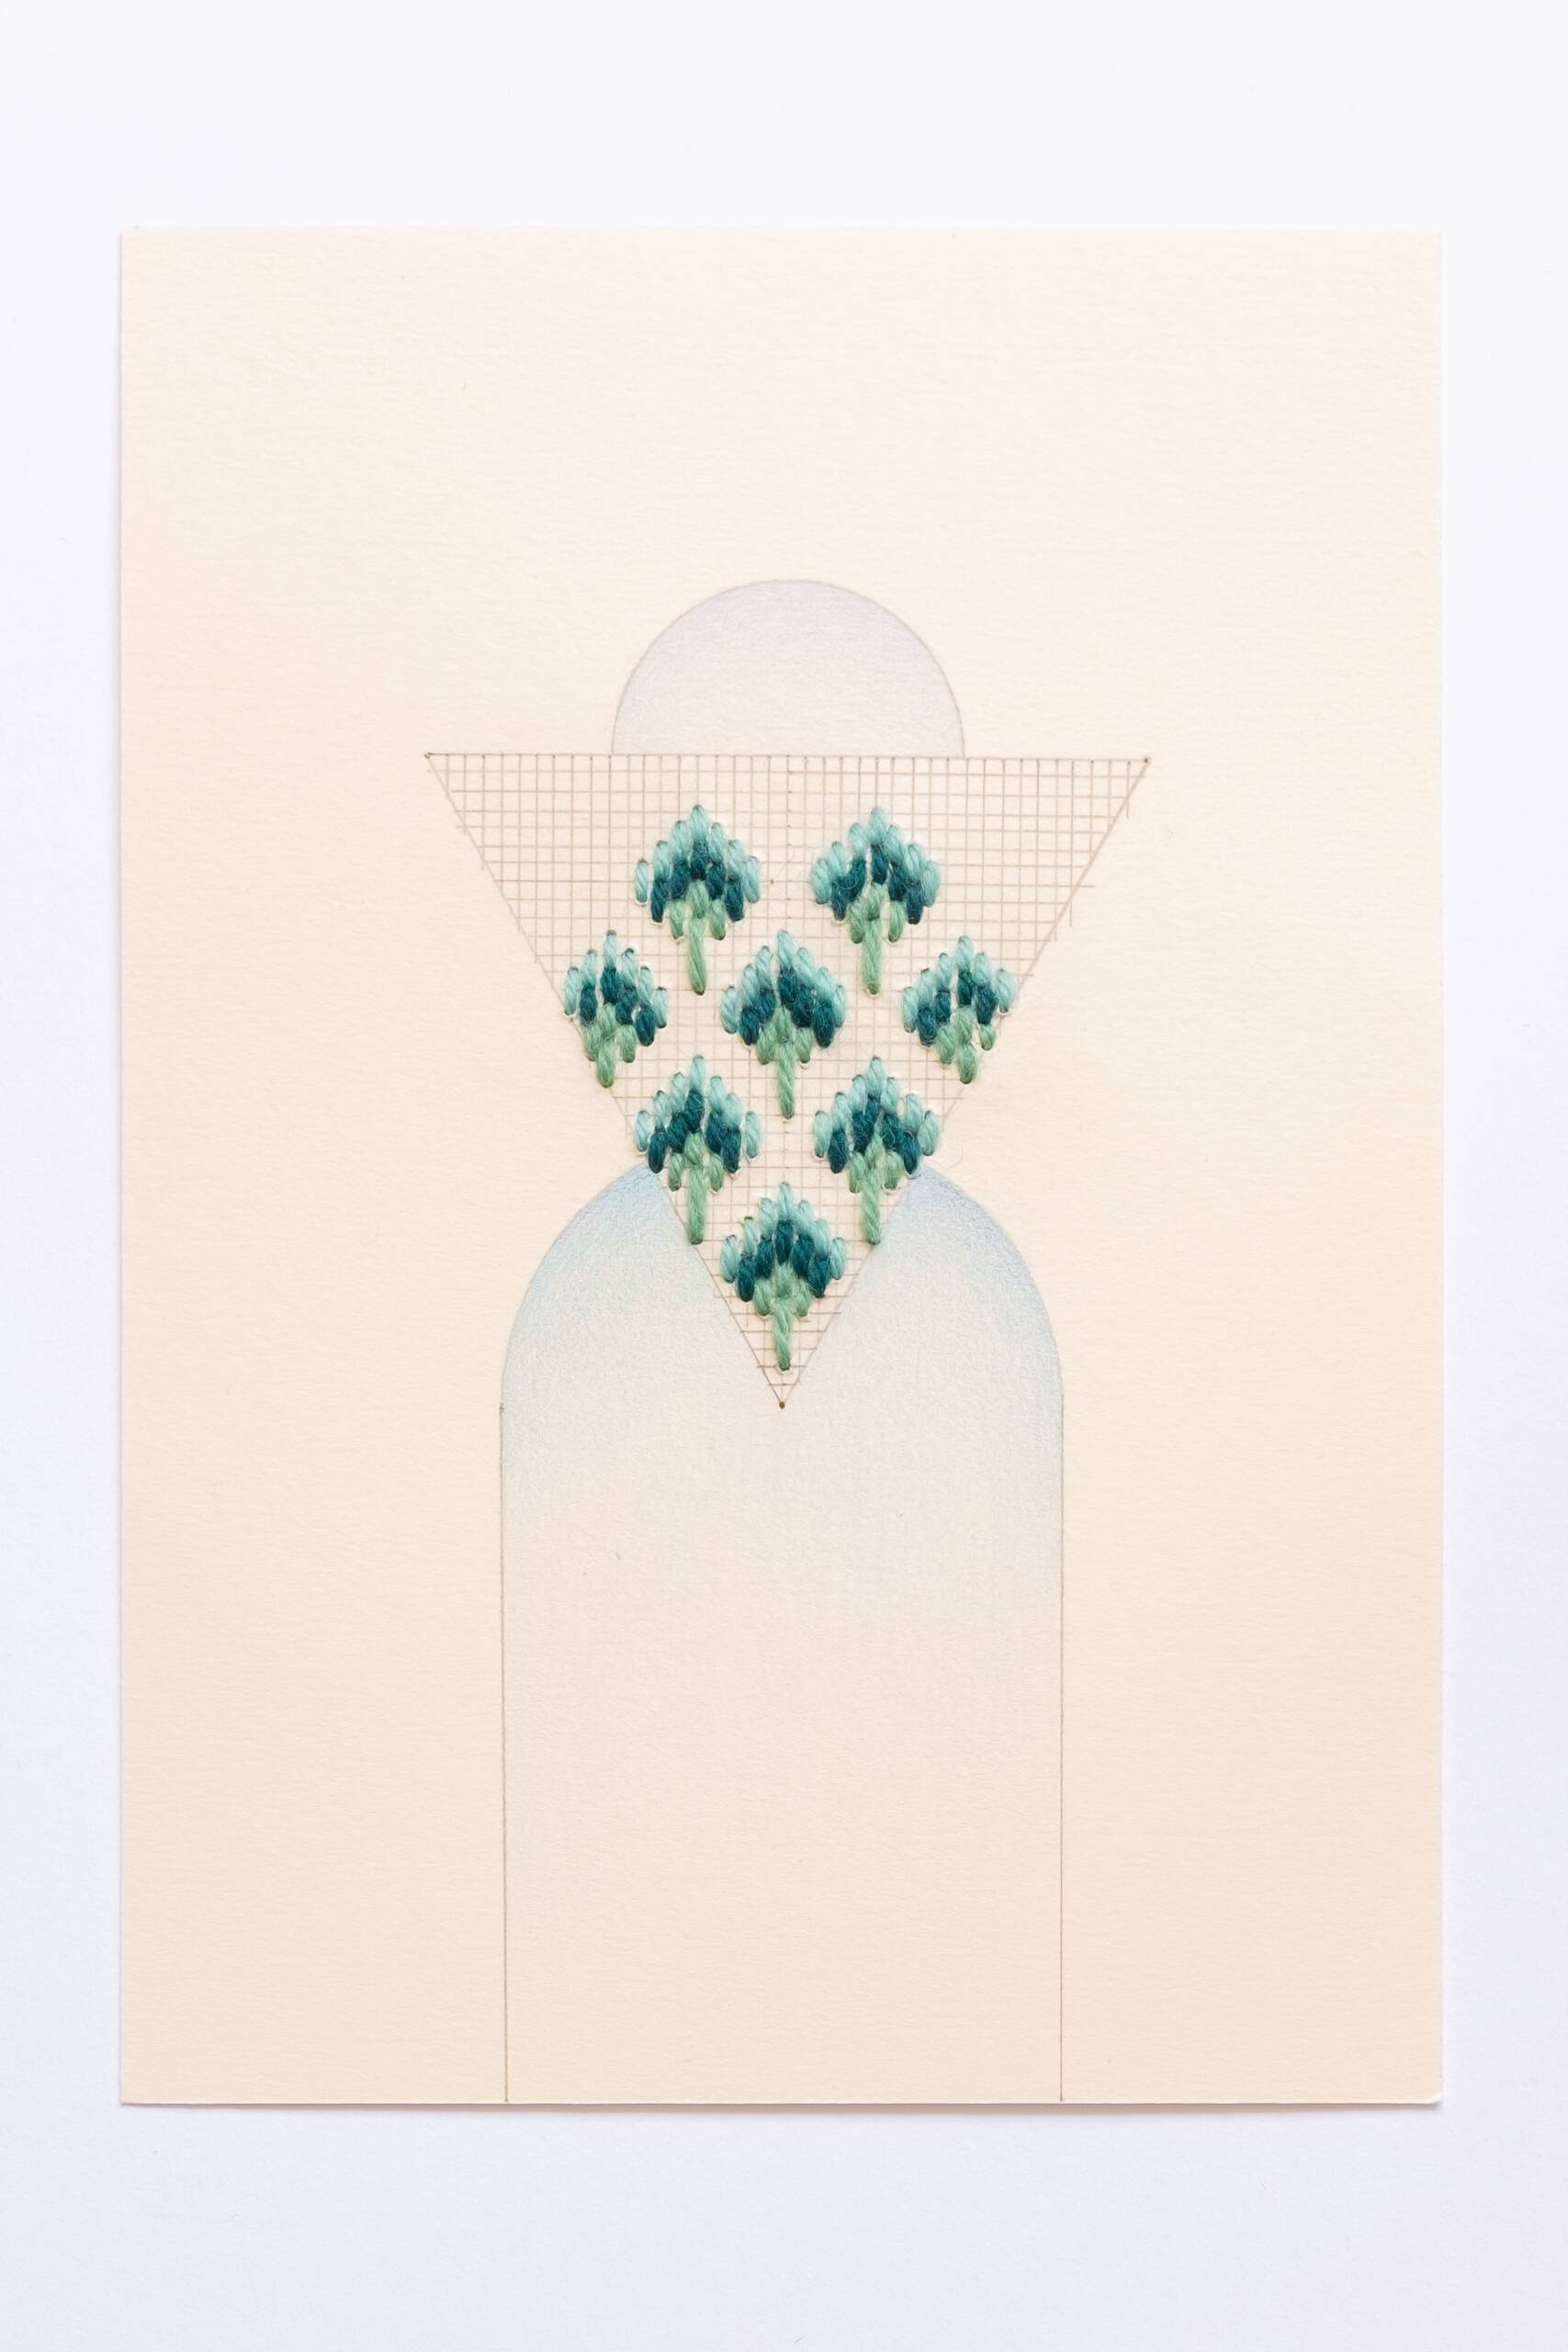 Bargello triangle [teal-green on peach], Hand-embroidered wool, pencil and colored pencil on paper, 2020